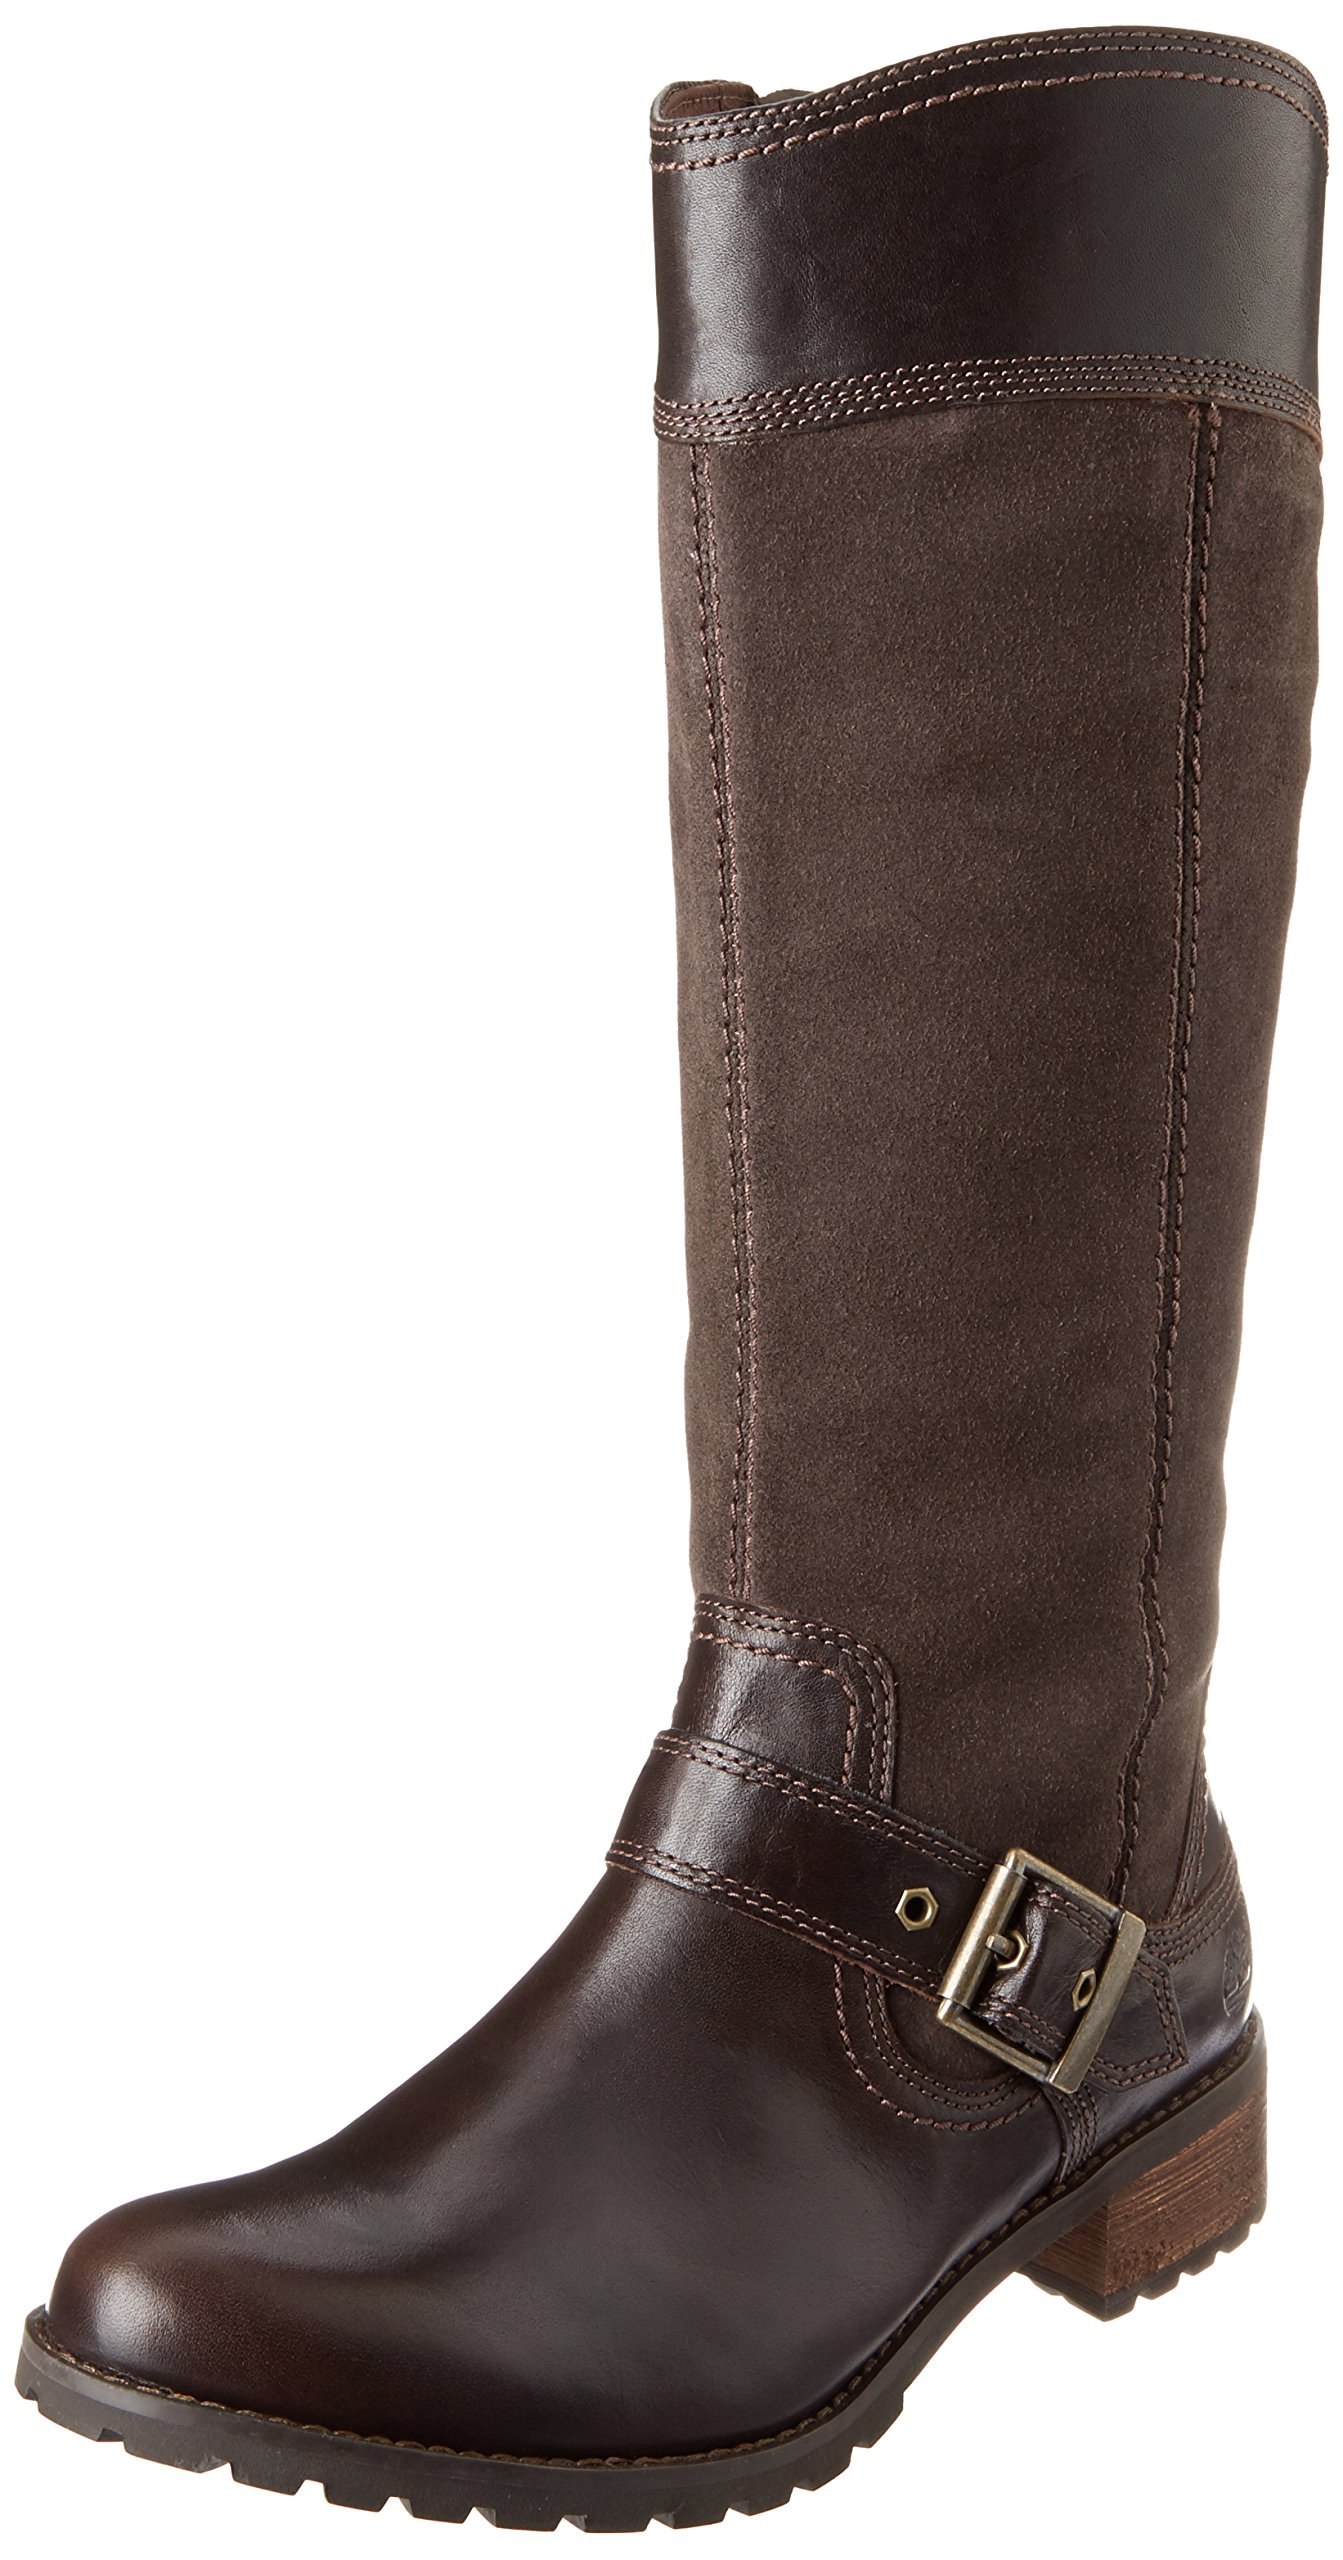 Timberland Women's EK Bethel Tall Harness Boot,Brown,6 W US by Timberland (Image #1)